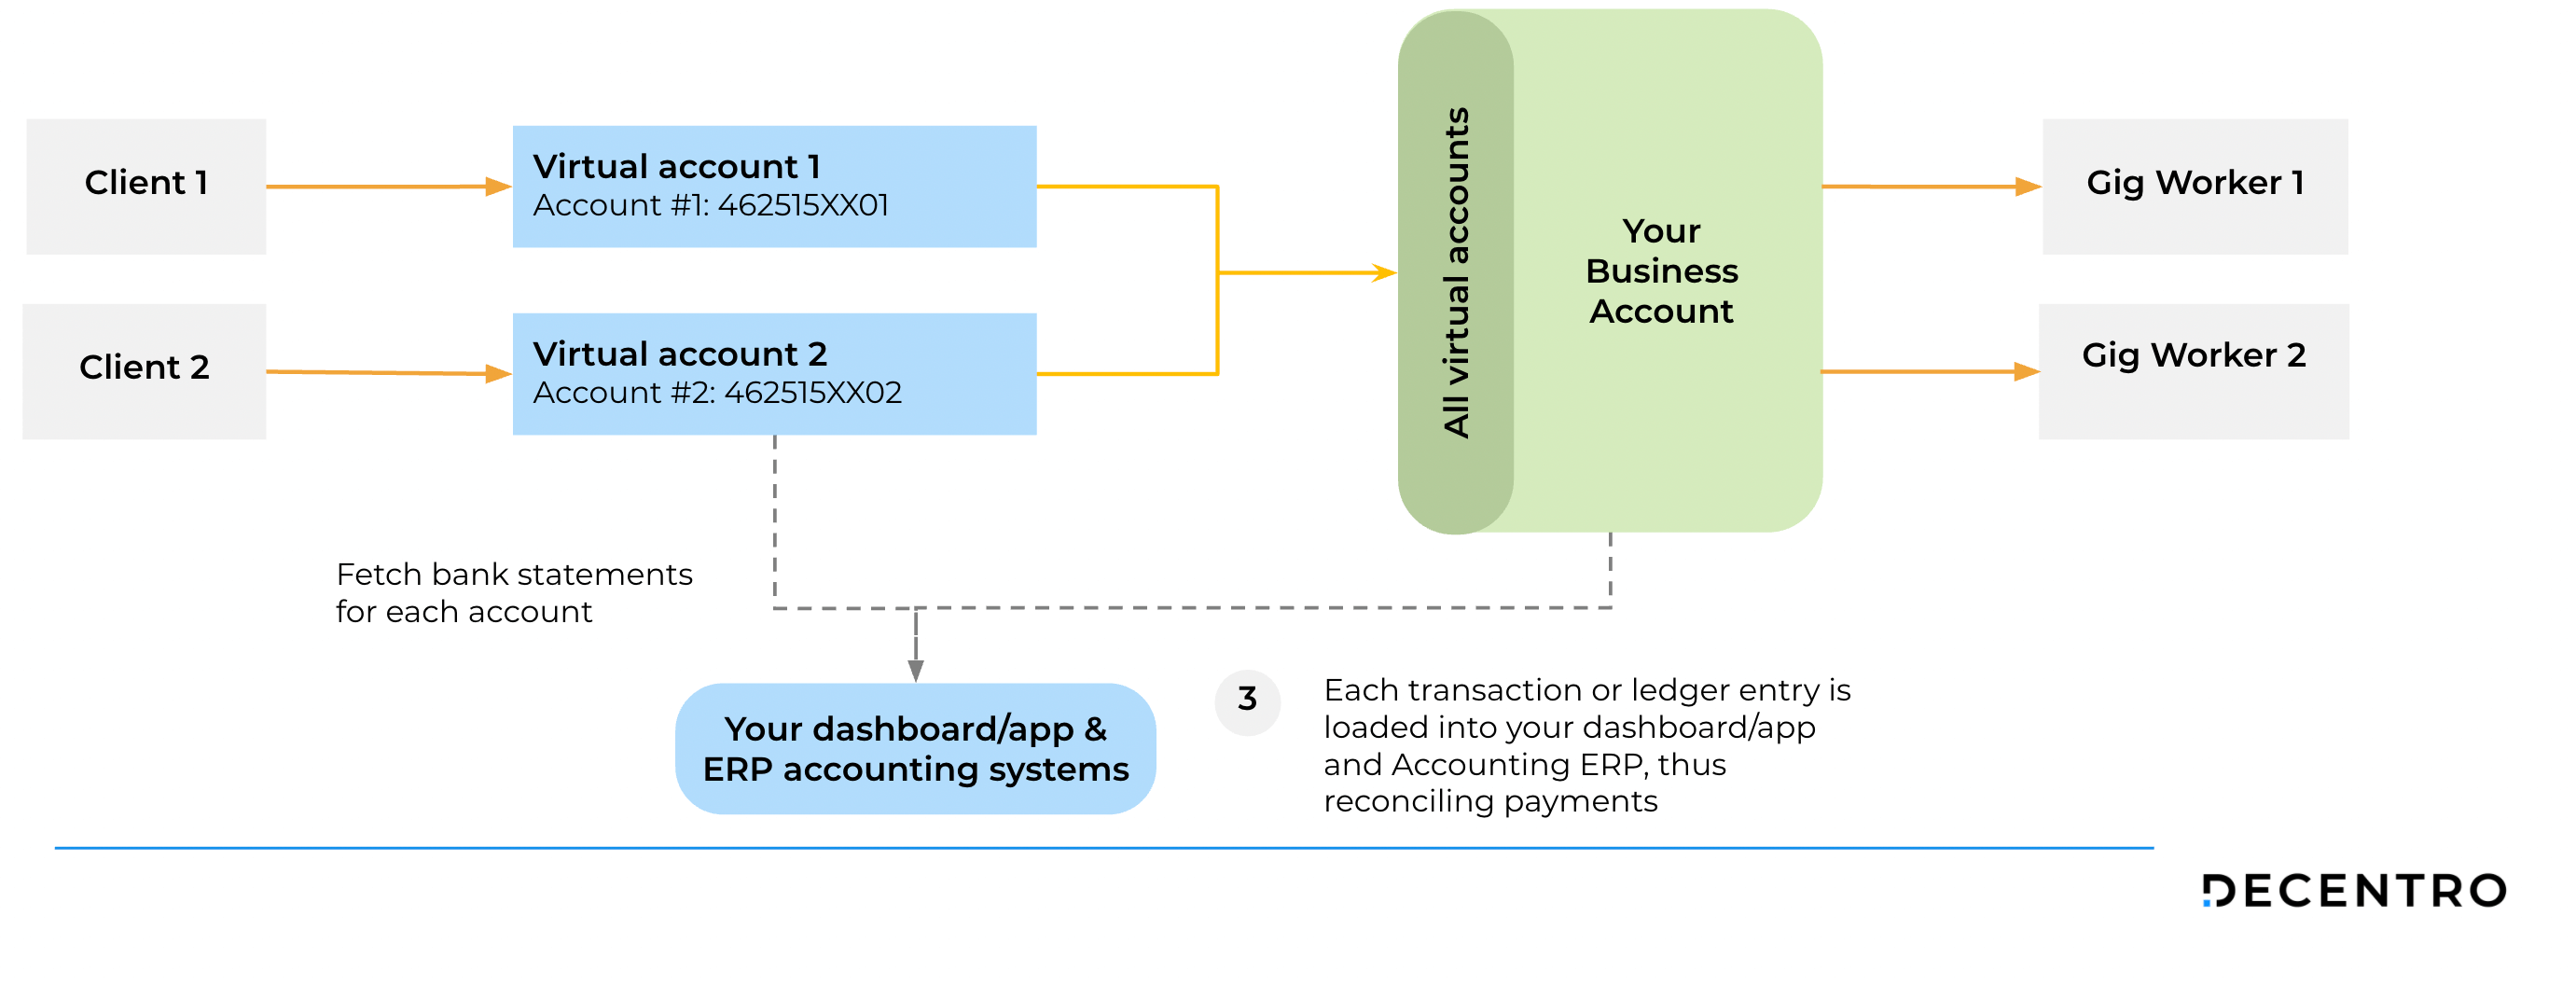 How Decentro Empowered Workflexi with virtual accounts and instant settlements.